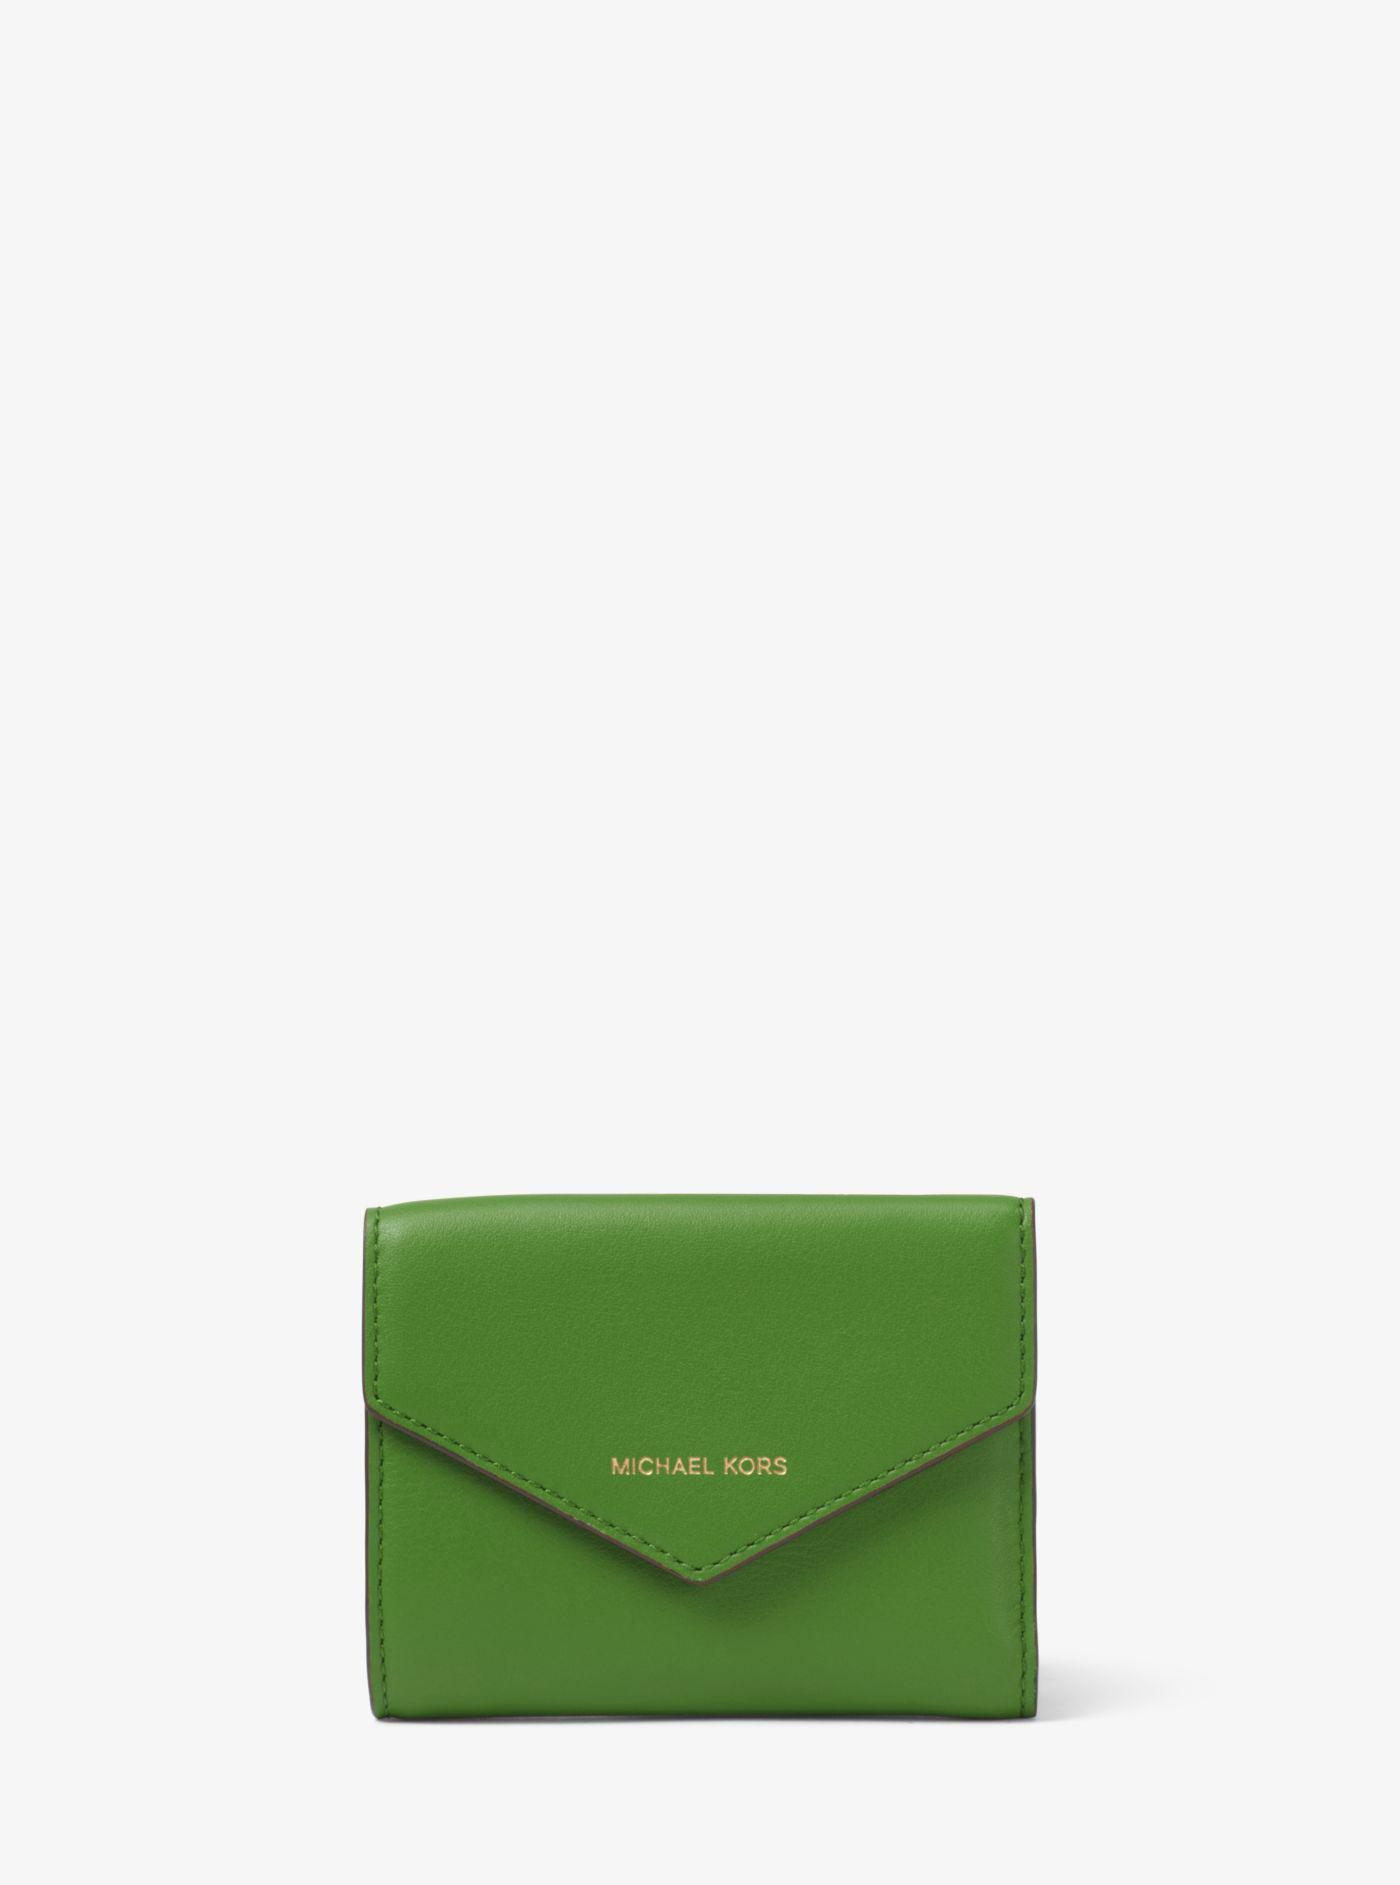 baccedf12fcb Lyst - Michael Kors Small Leather Envelope Wallet in Green